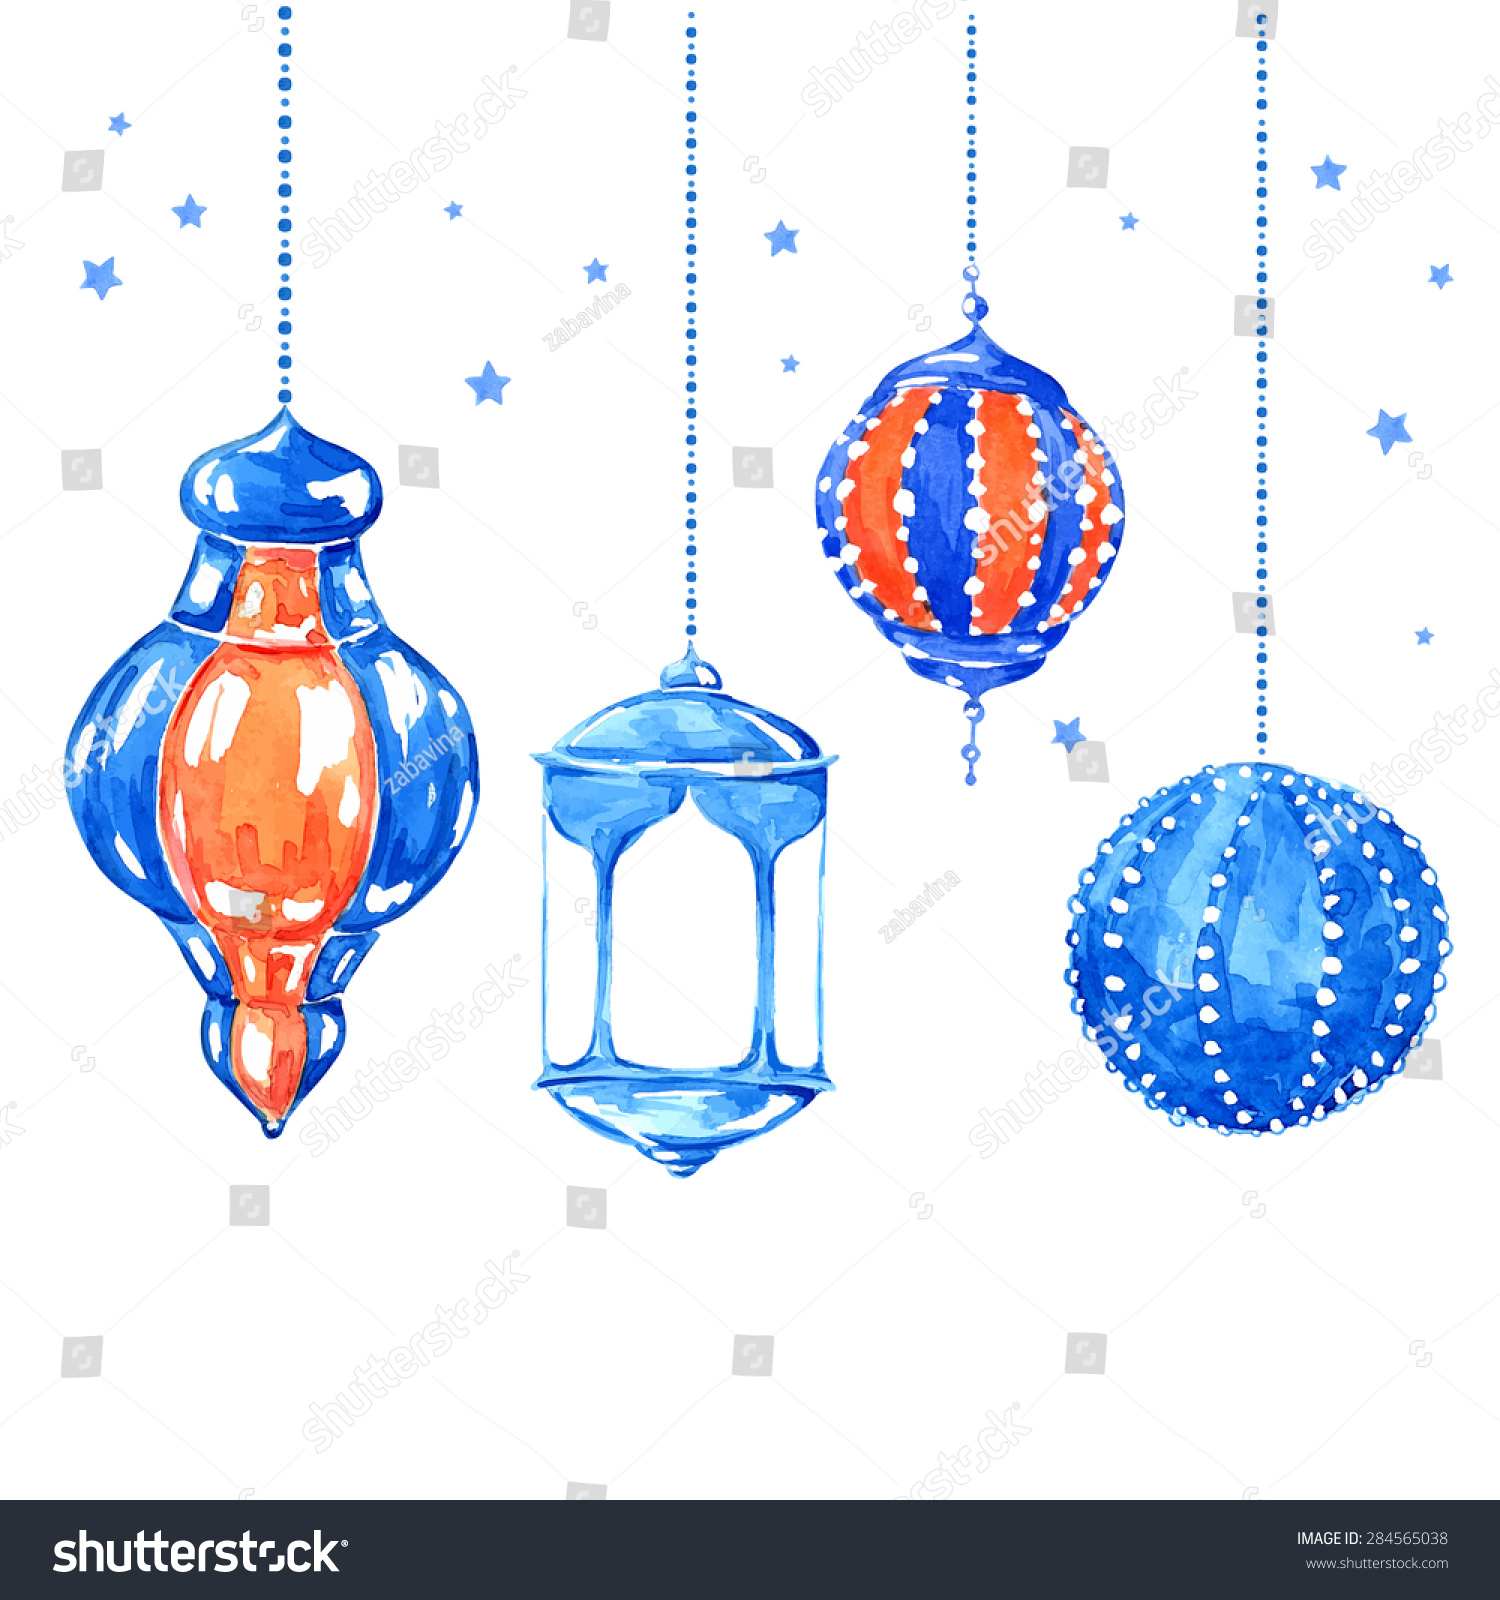 Hanging Lamp Vector: Ramadan Kareem Bright Watercolor Stains Background 스톡 벡터